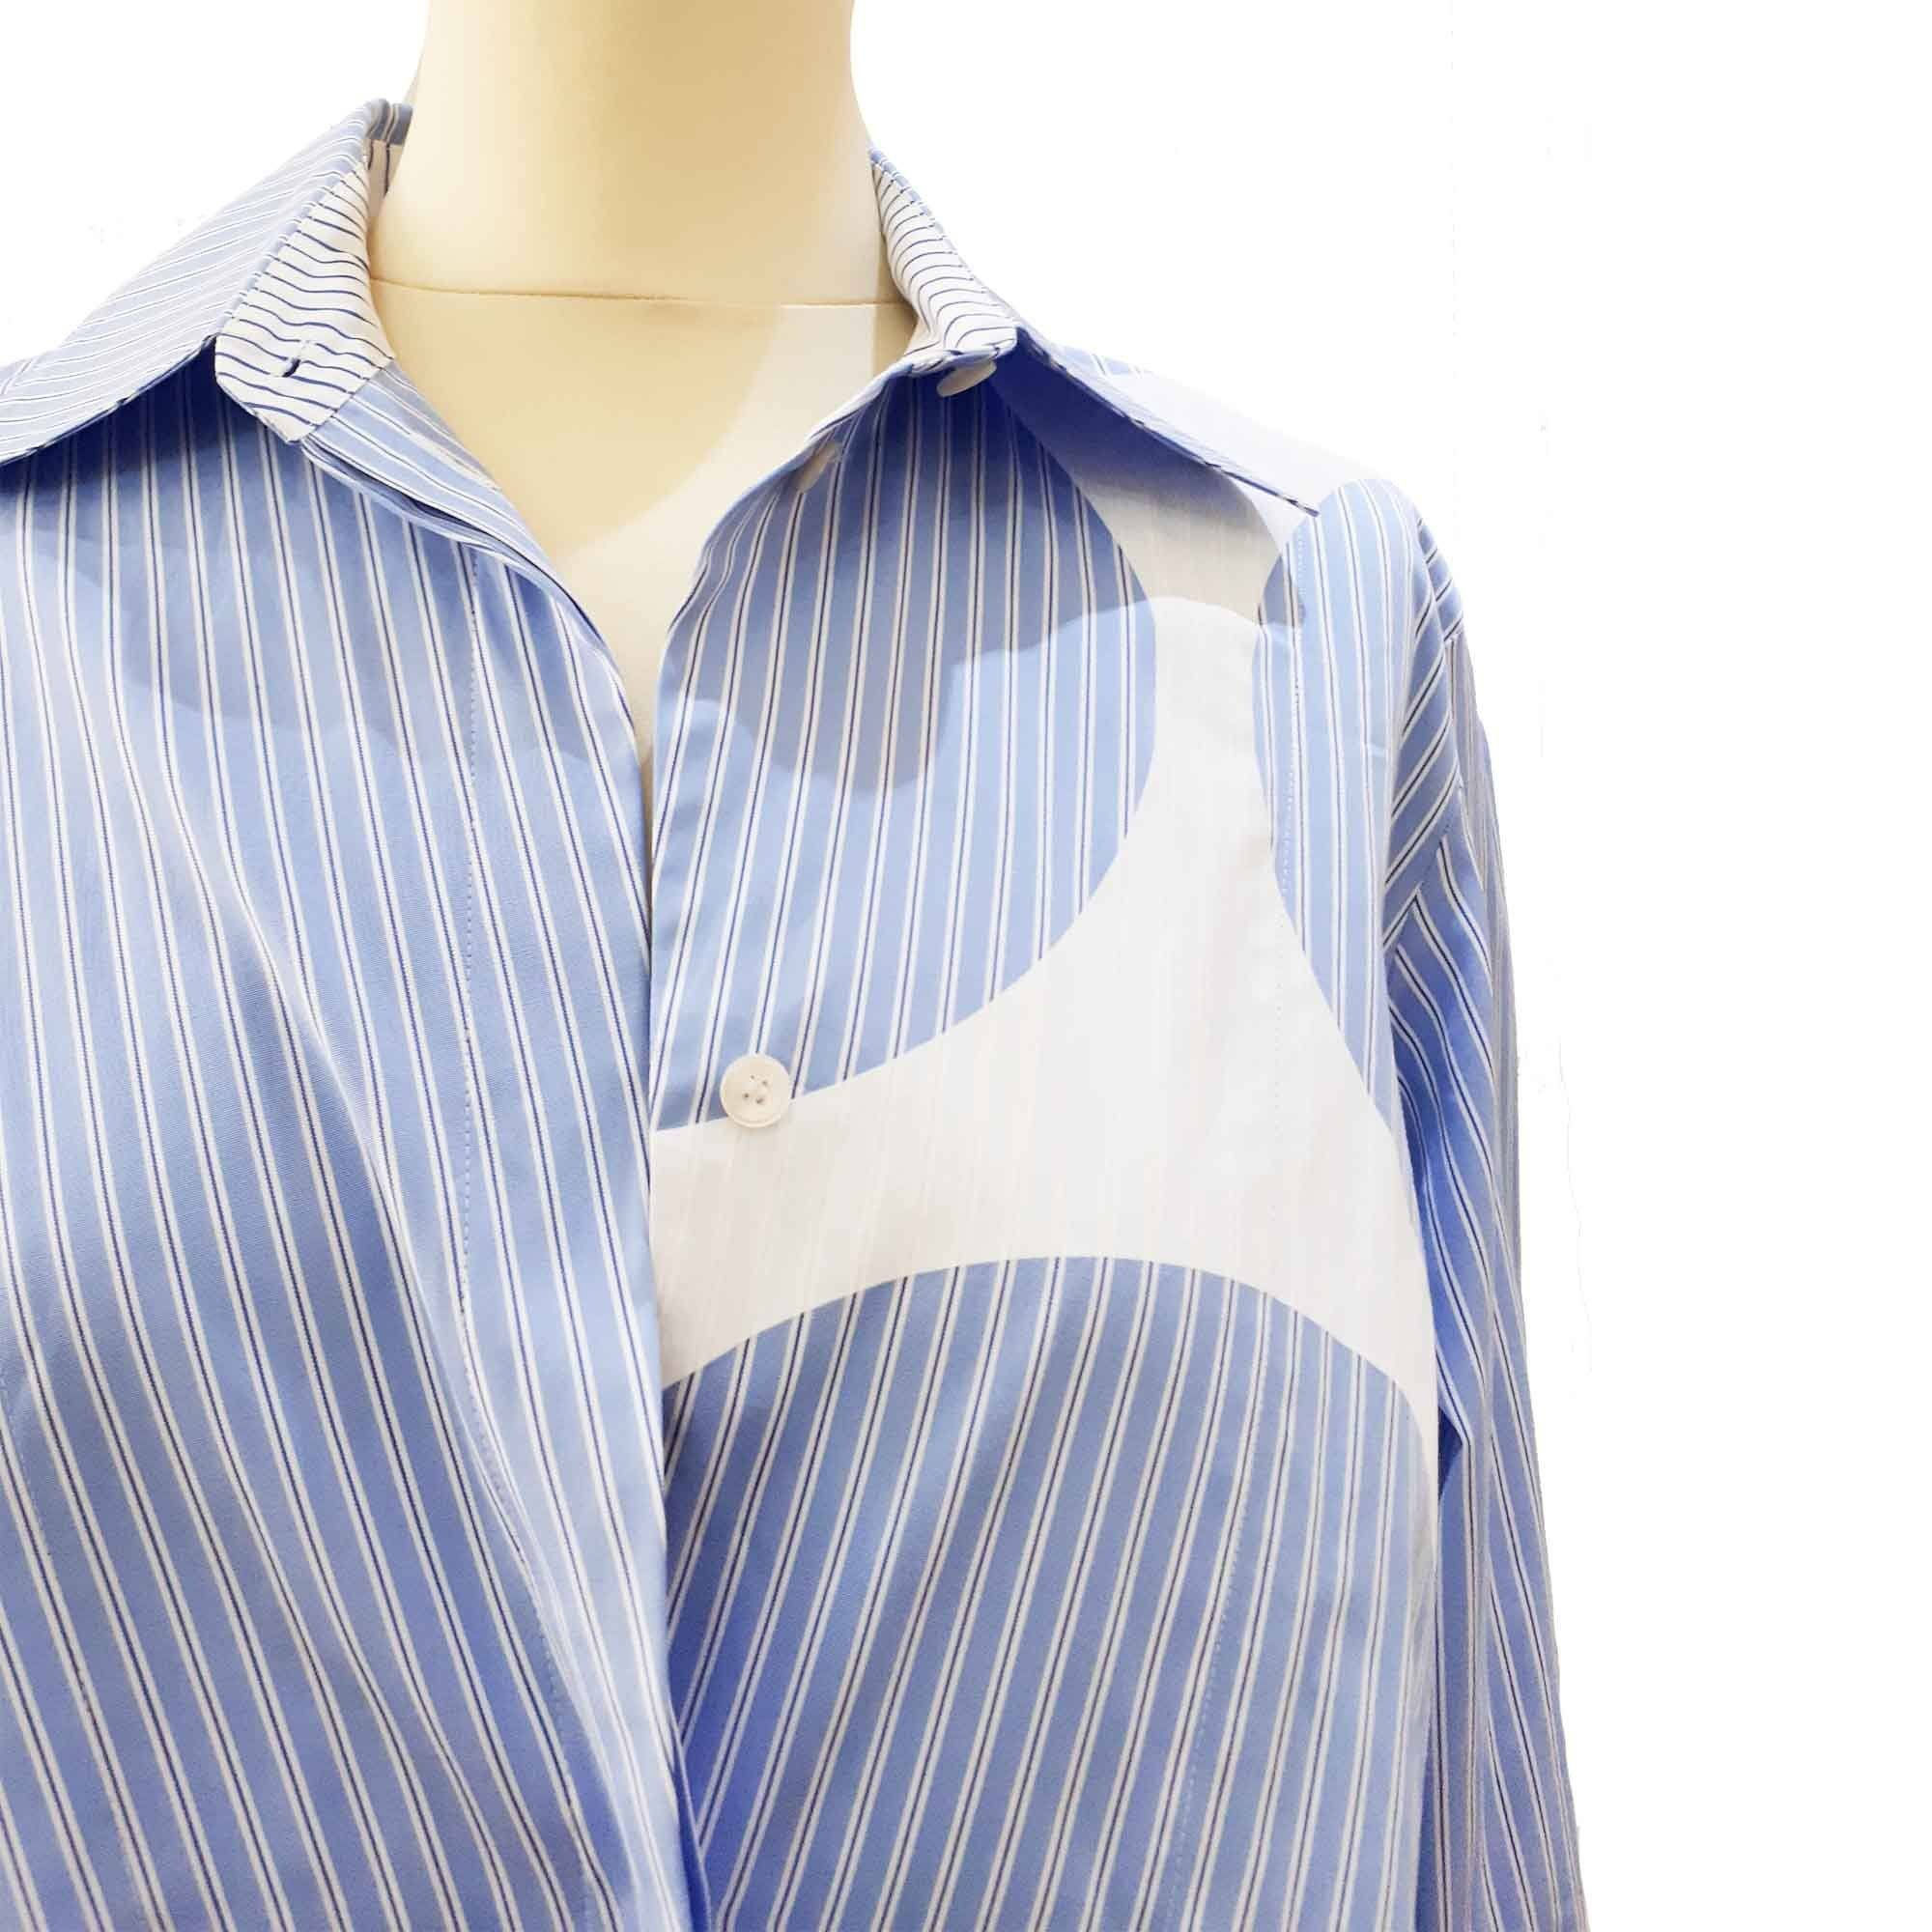 Stella McCartney Manuela Cotton Shirt